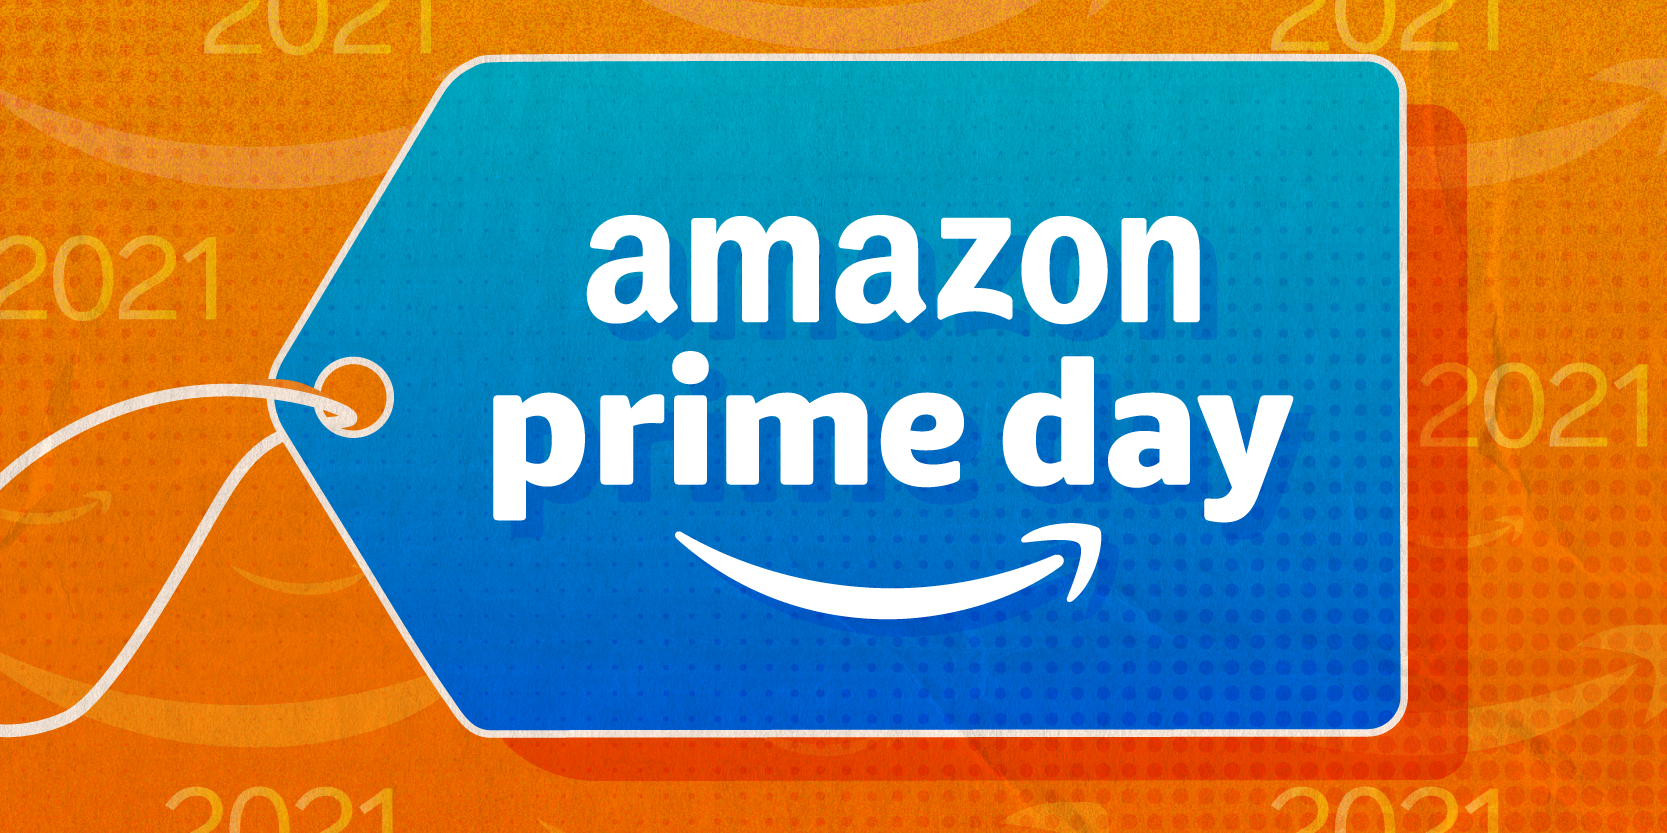 The best Amazon Prime Day laptop deals include discounts on the Google Pixelbook Go, Razer Blade 15, and Apple MacBook Air